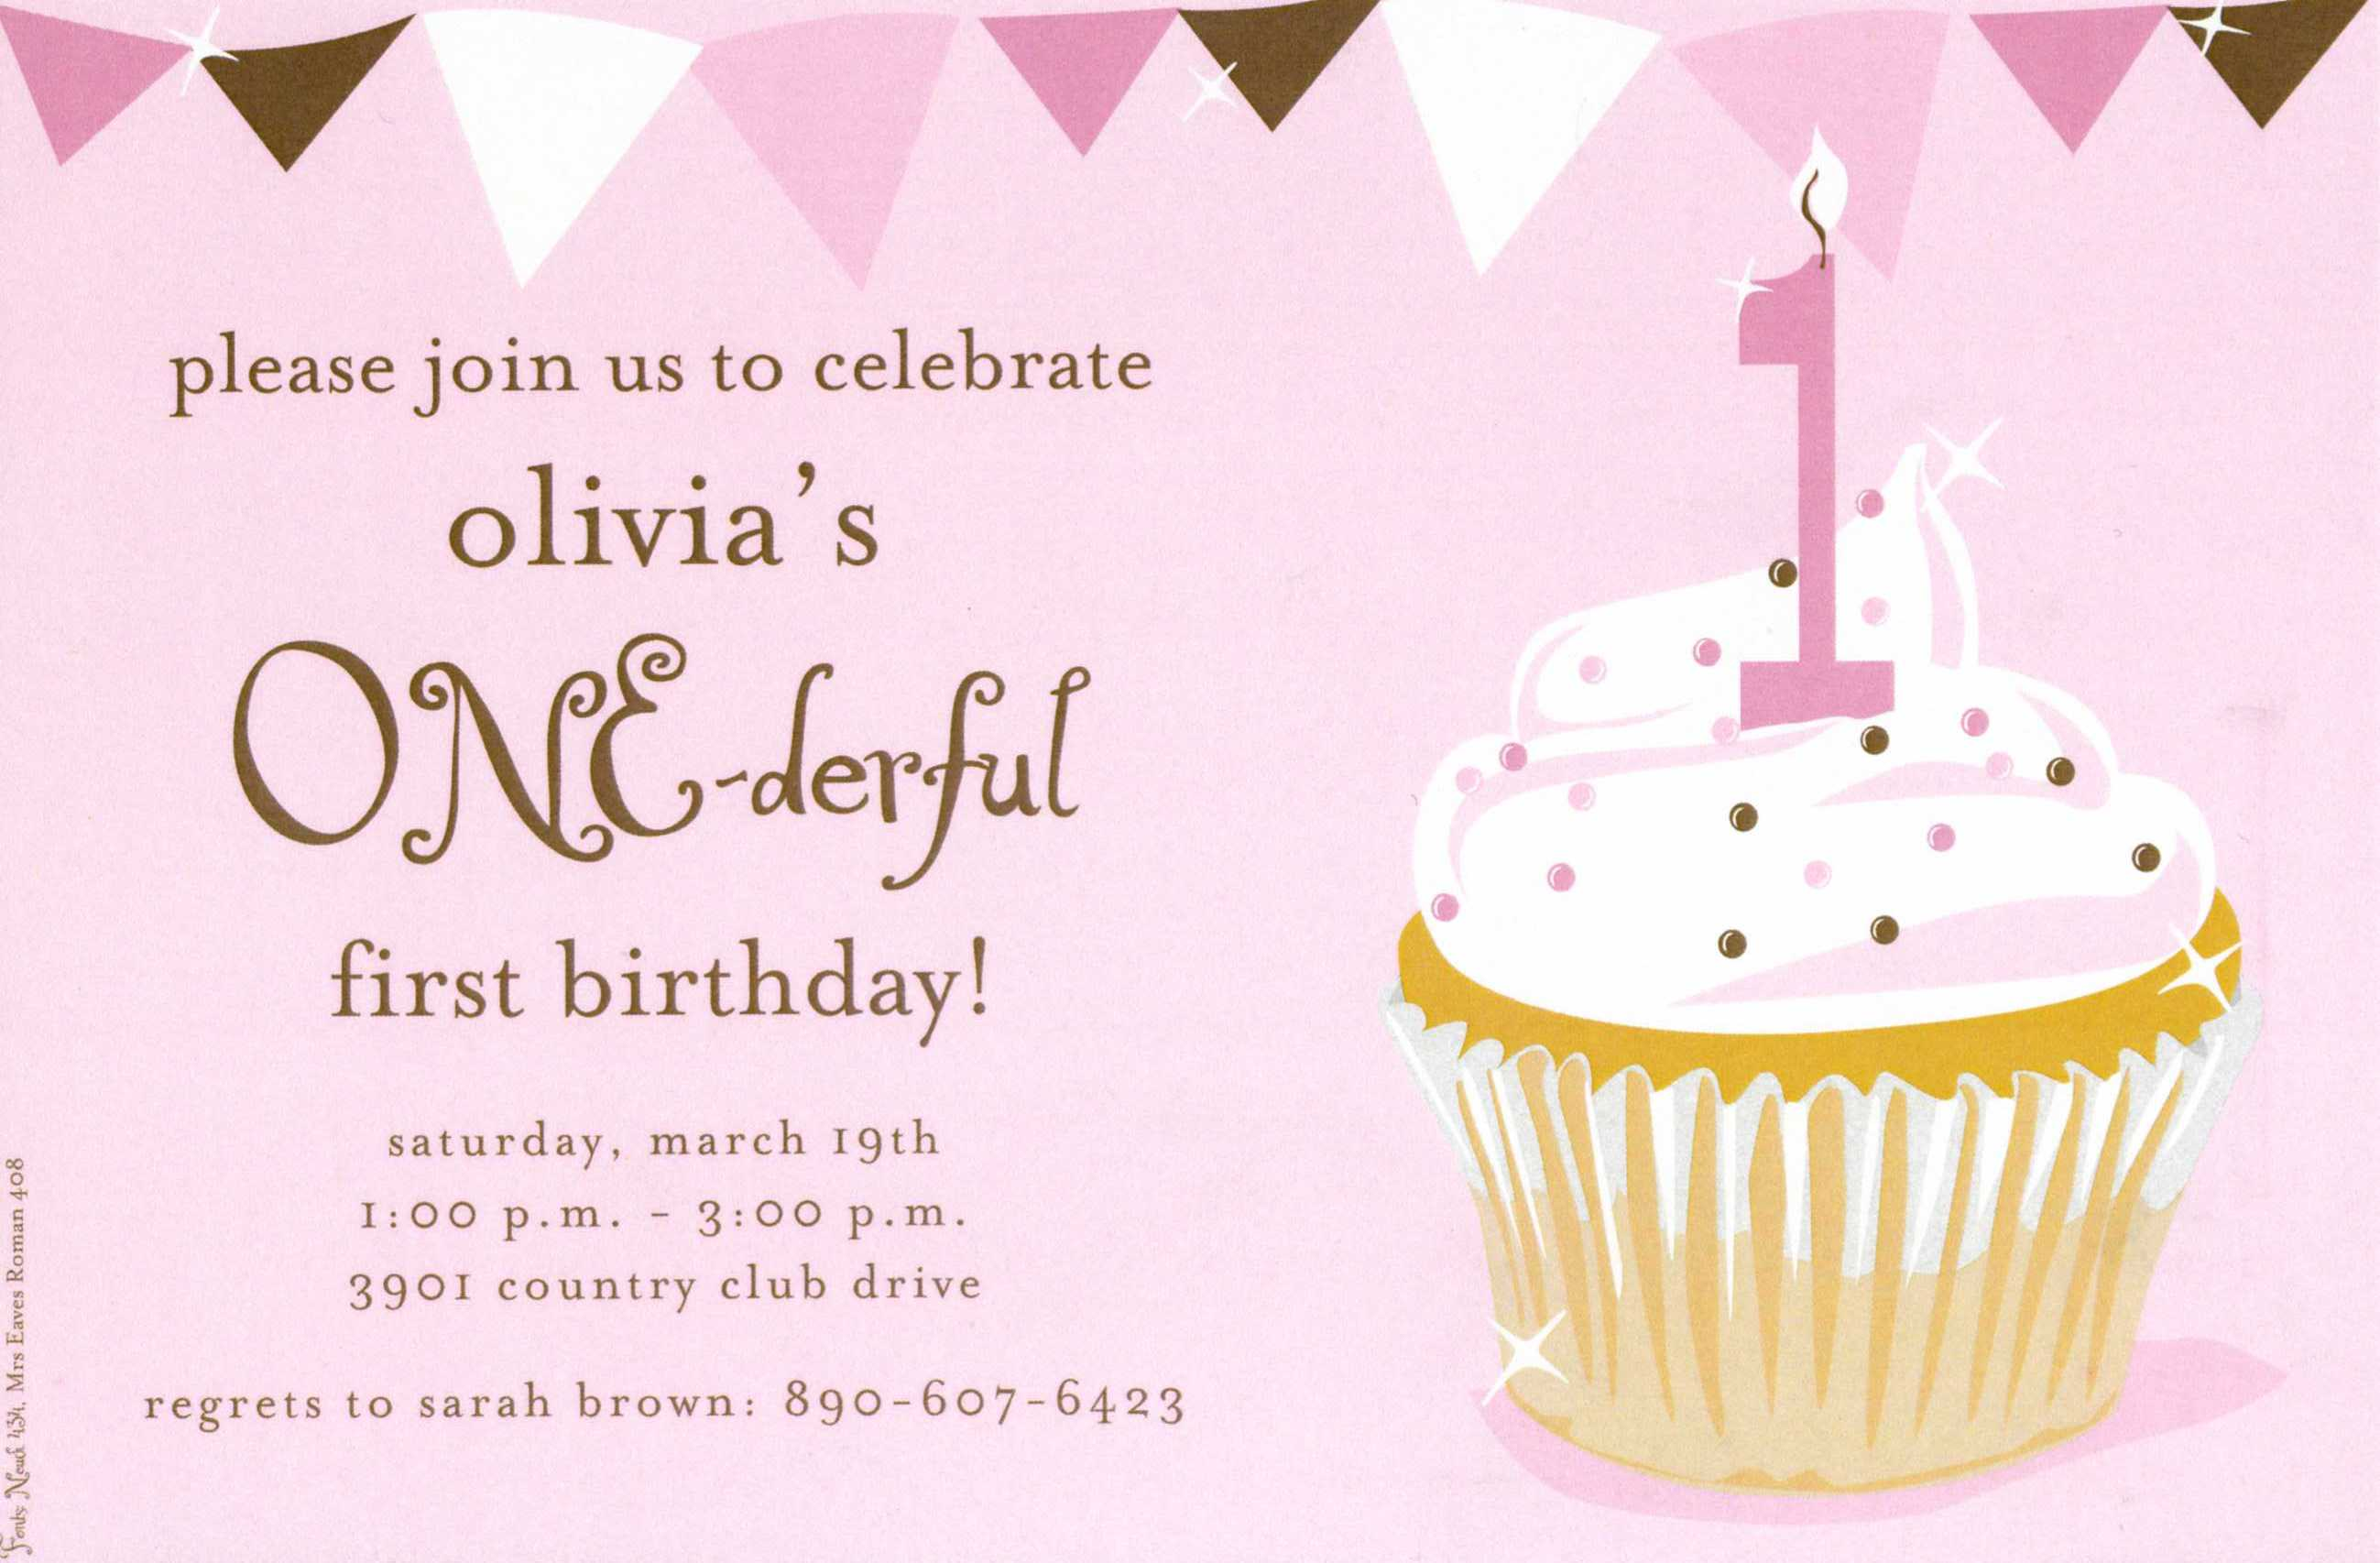 Quick View ZMW Onederful Girl Invitation - Birthday invitation in words